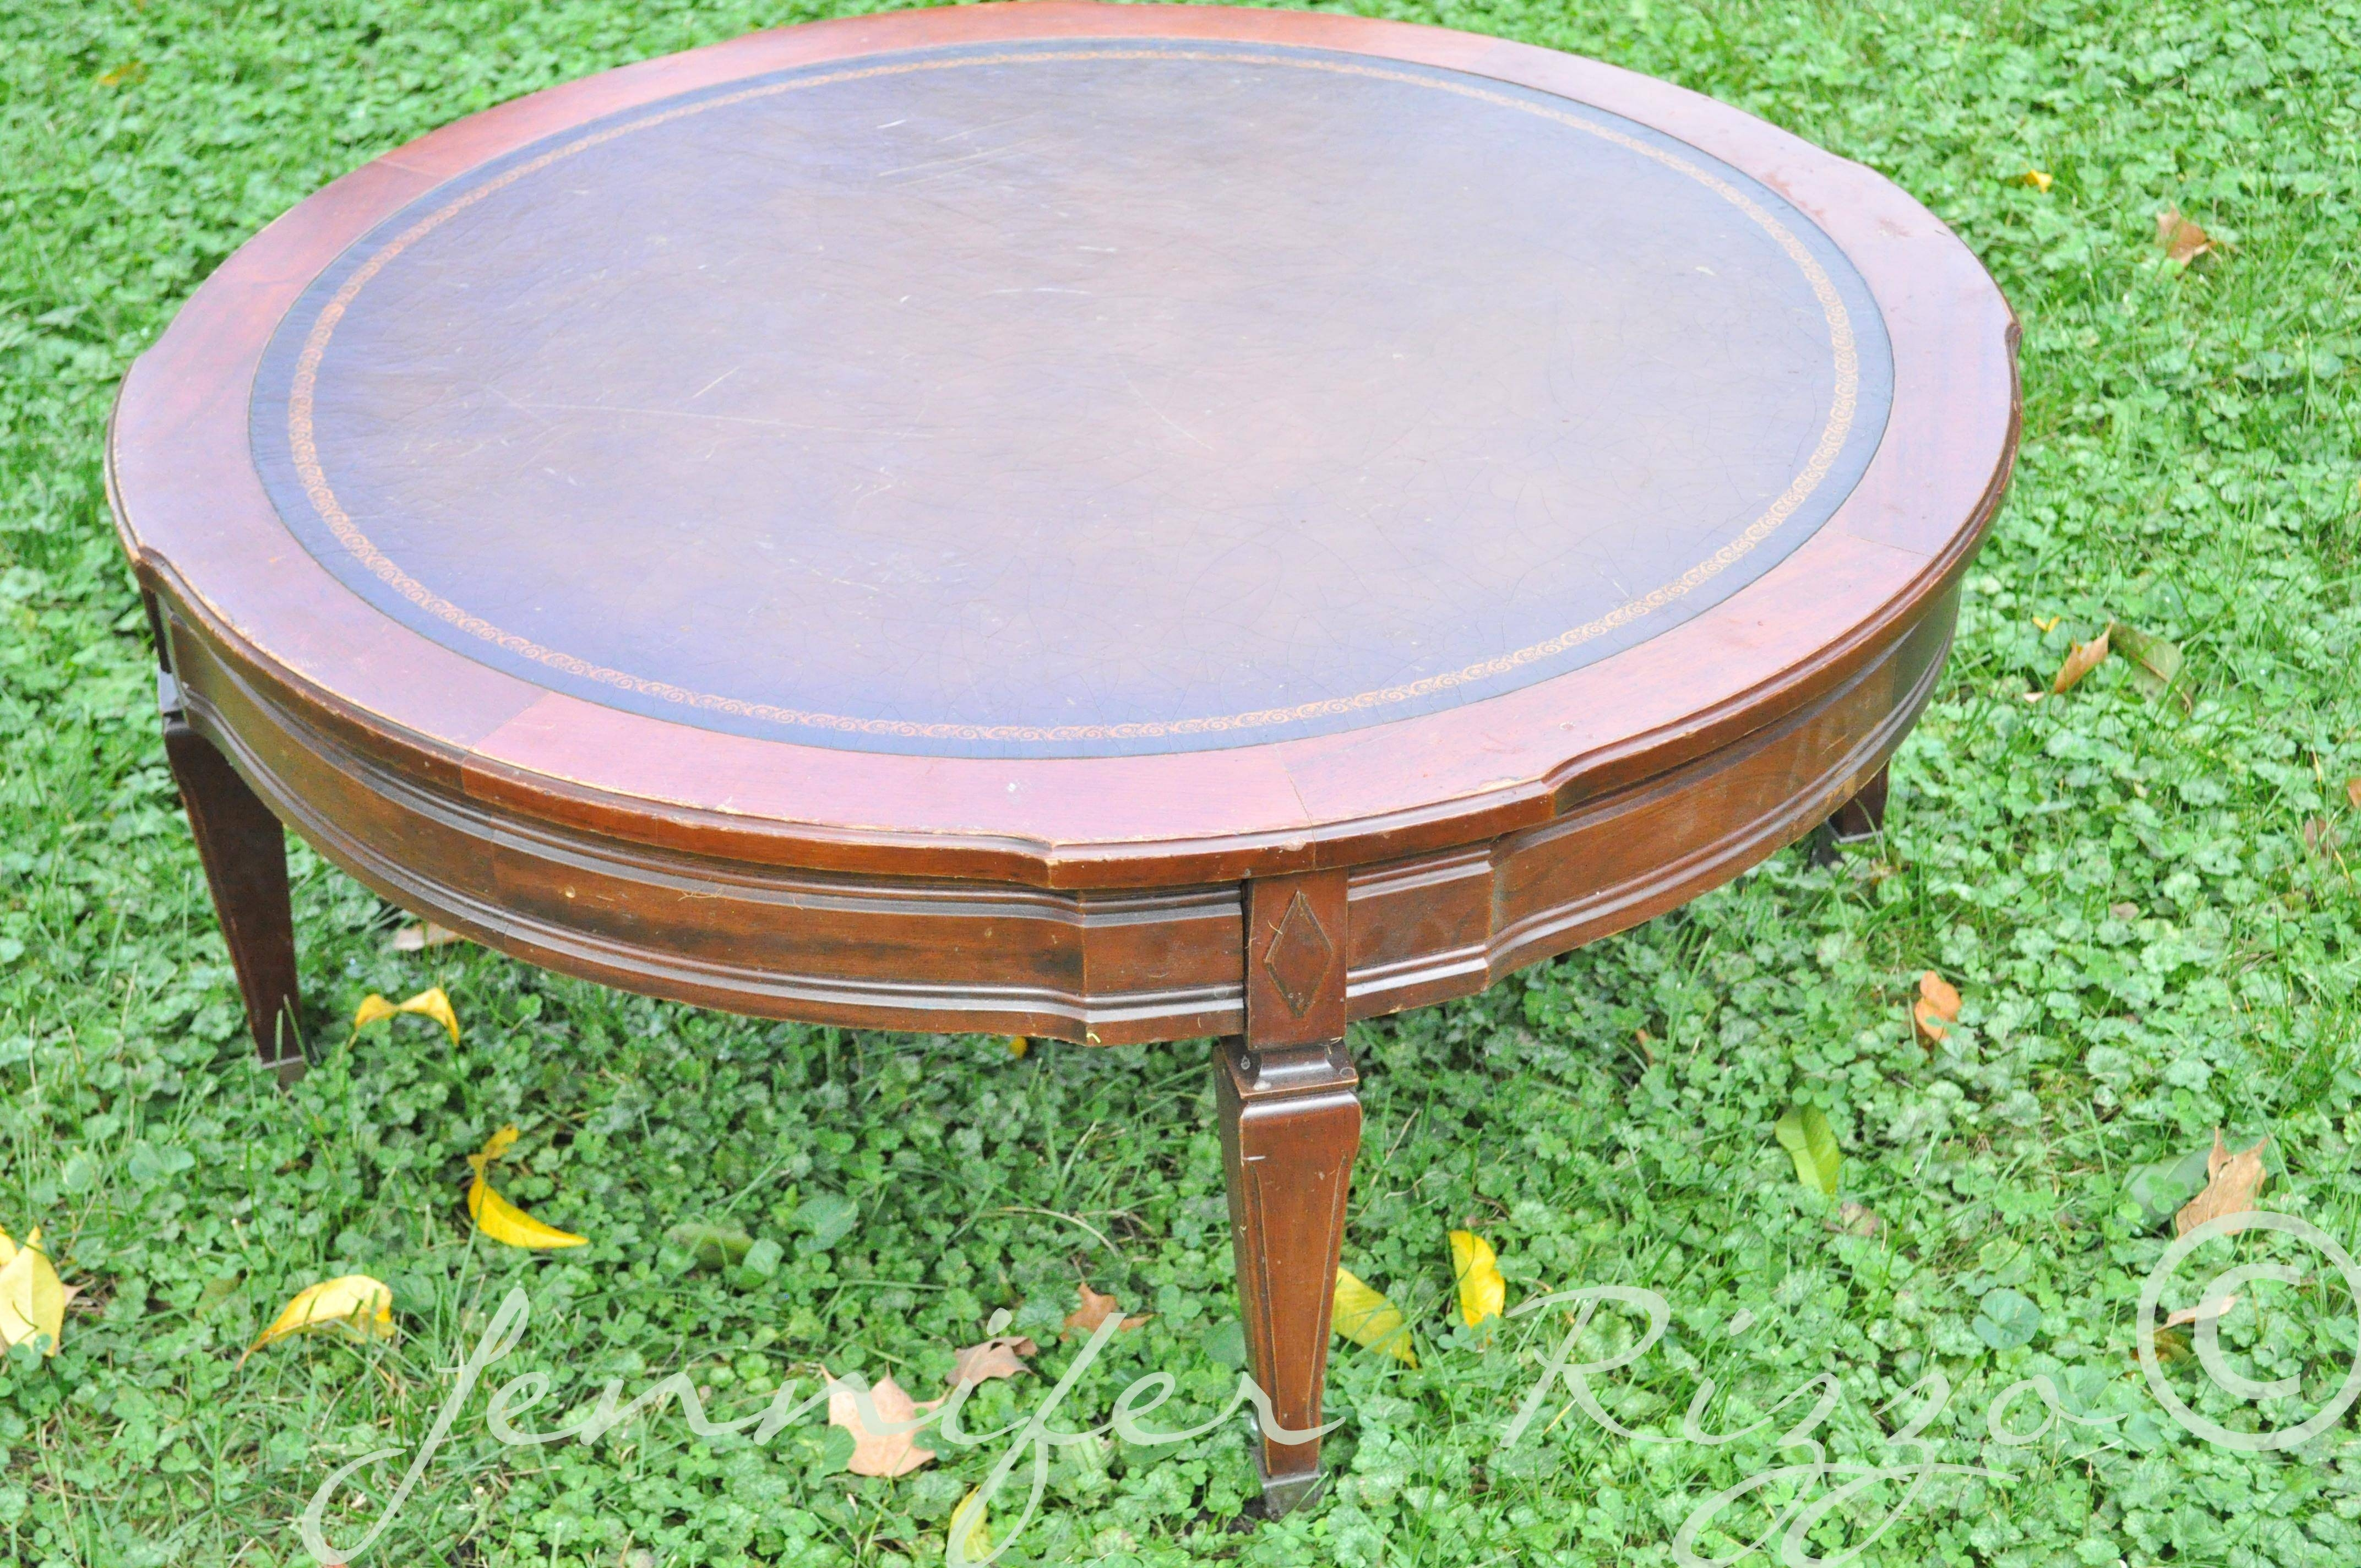 Turn A Vintage Coffee Table Into A Tufted,upholstered Ottoman Throughout Round Upholstered Coffee Tables (View 8 of 30)